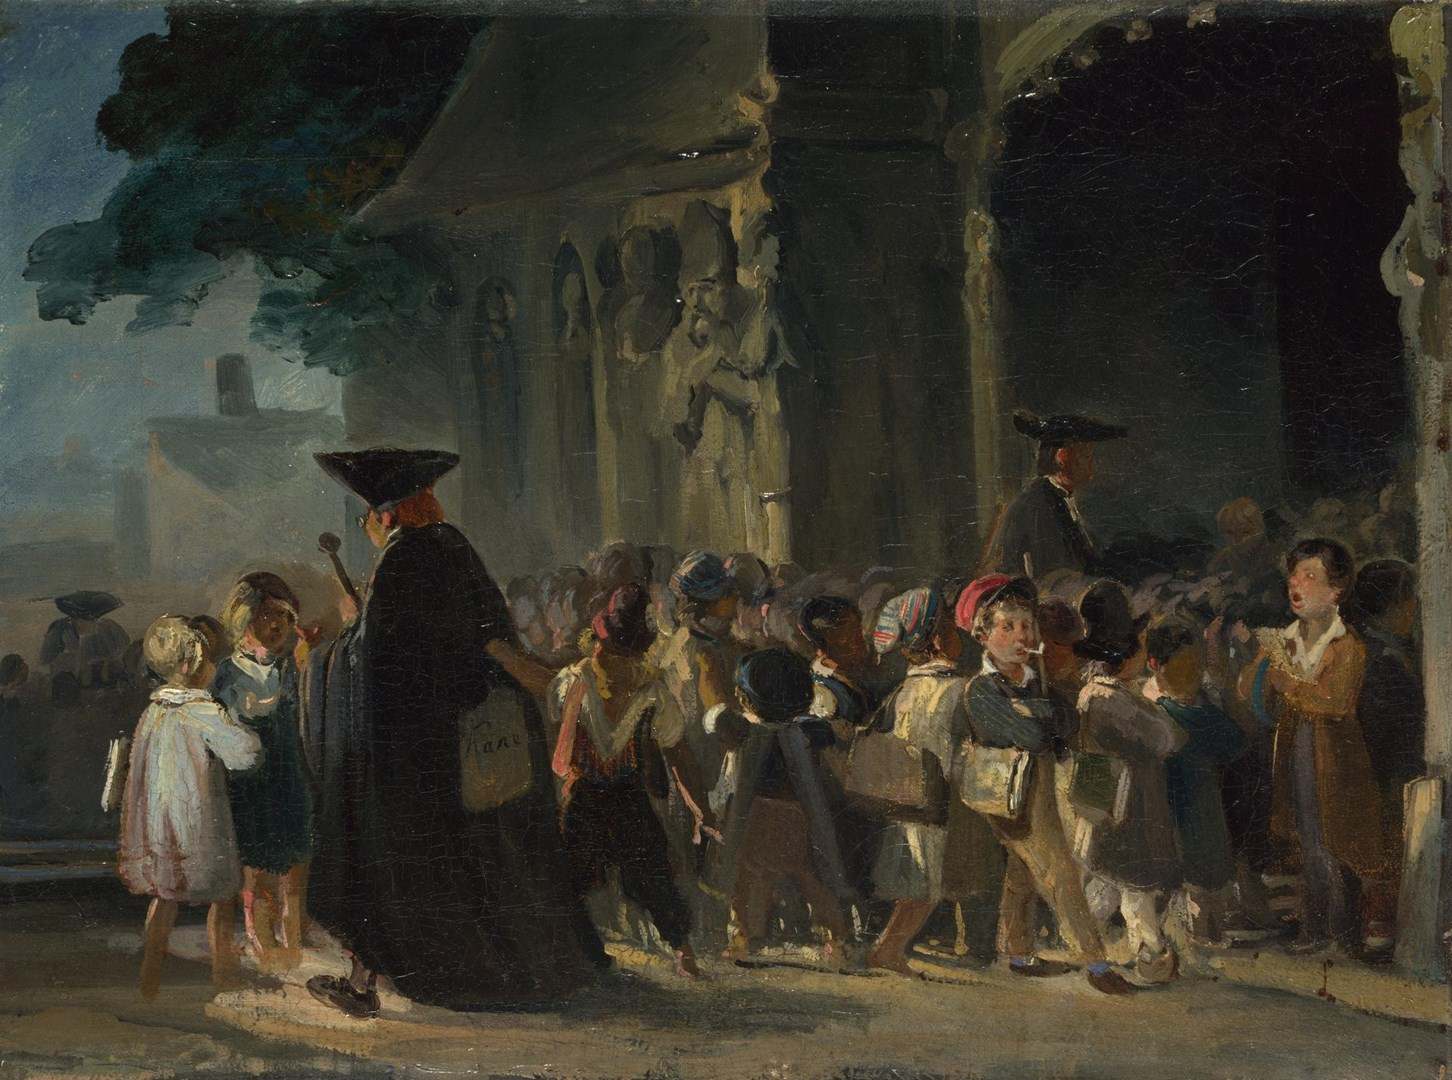 Children at a Church Door by Nicolas-Toussaint Charlet